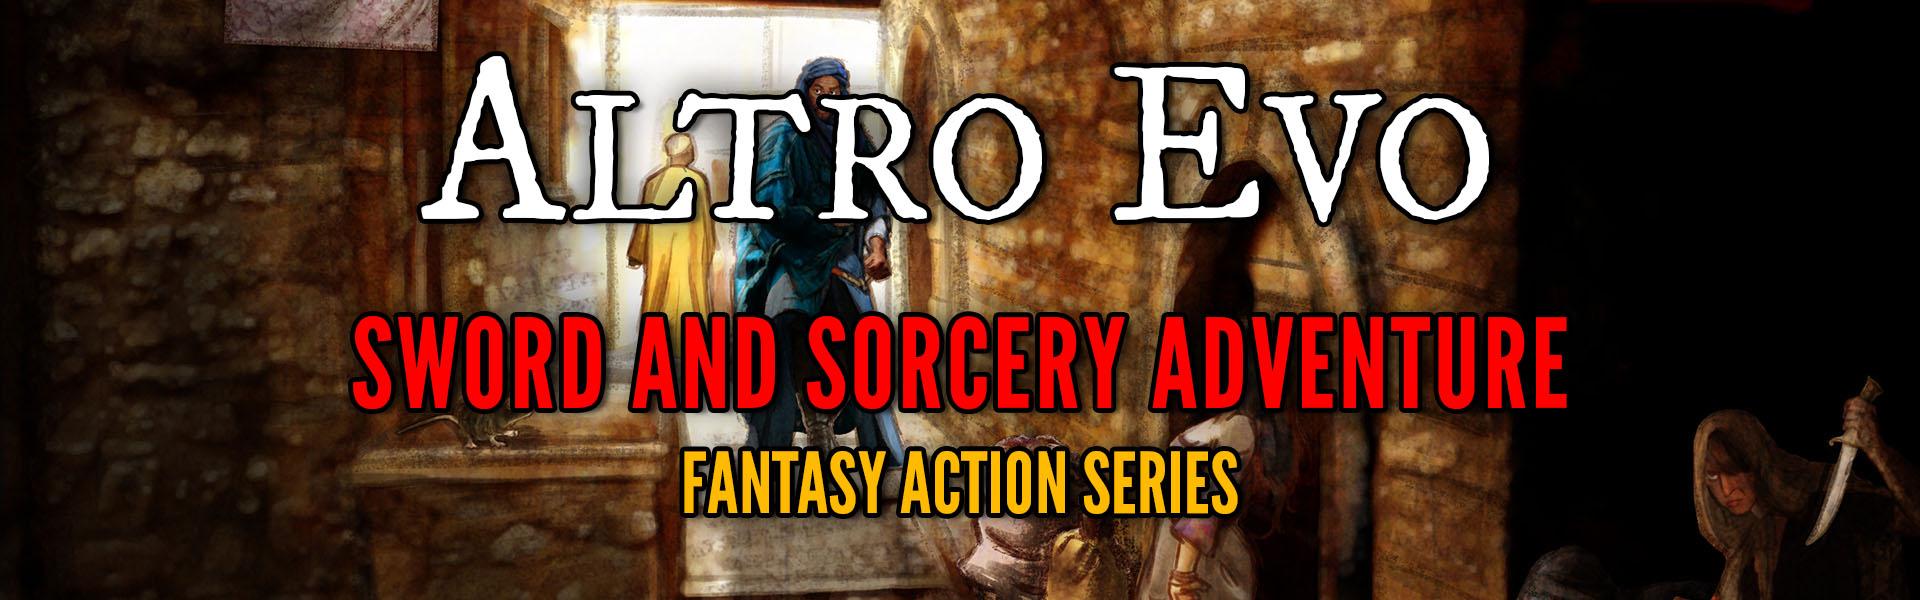 altro evo sword and sorcery fantasy series